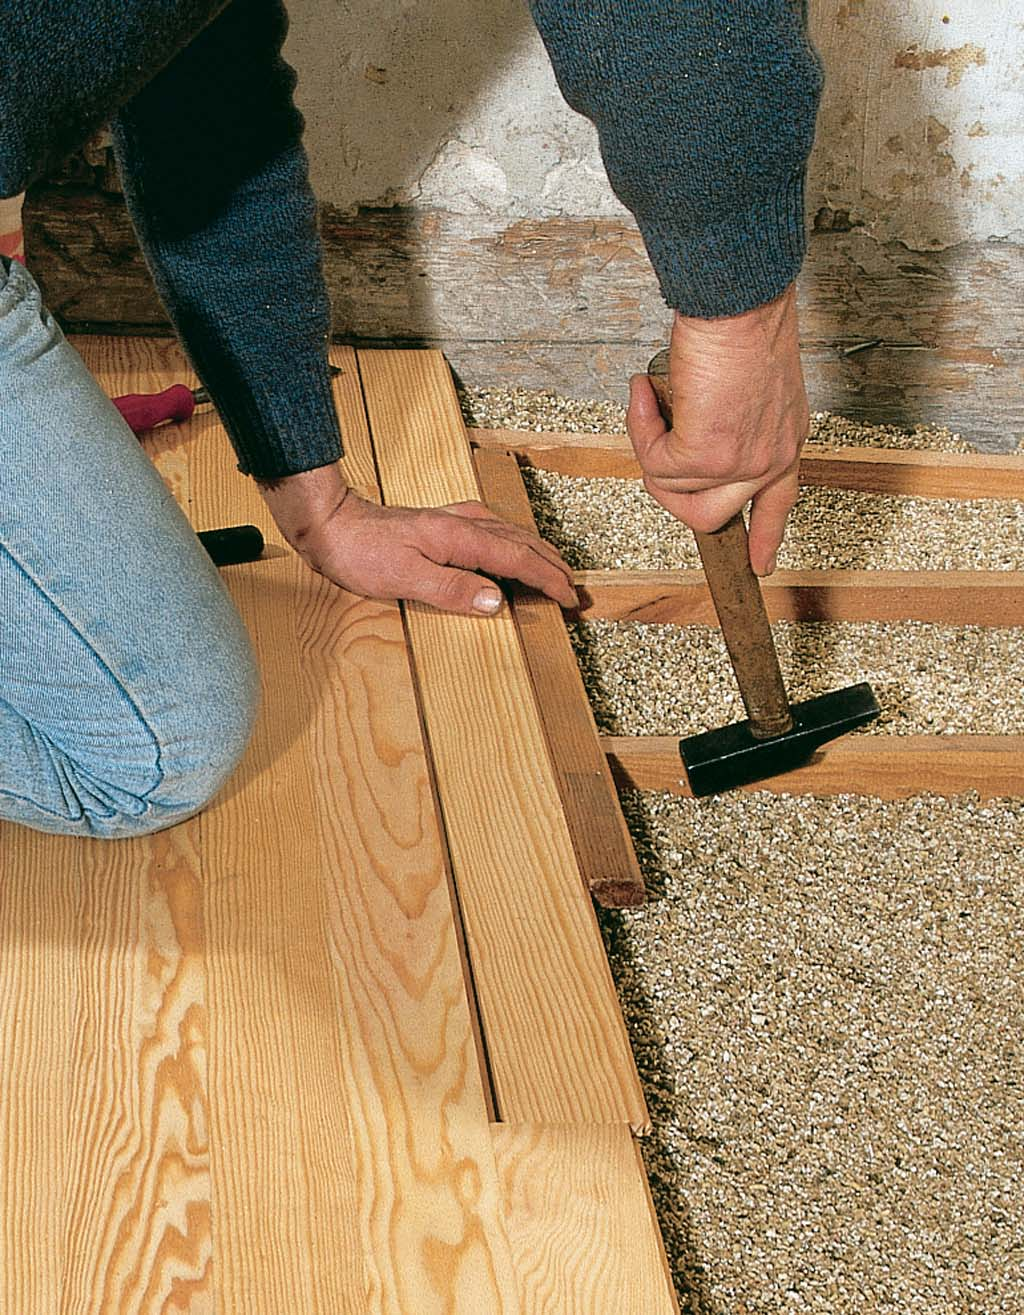 Comment clouer un parquet ?